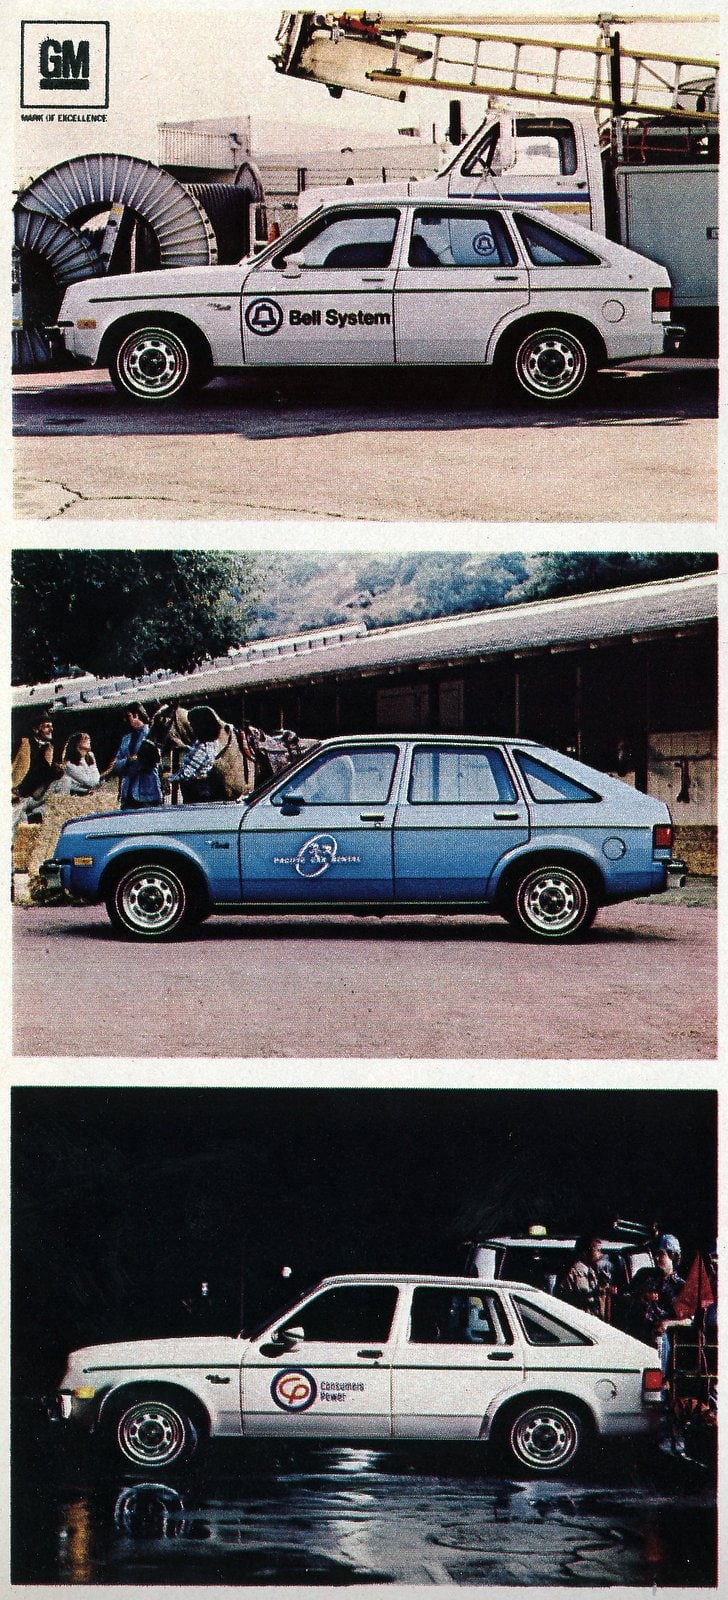 Chevrolet Chevette fleet cars from 1980 (2)